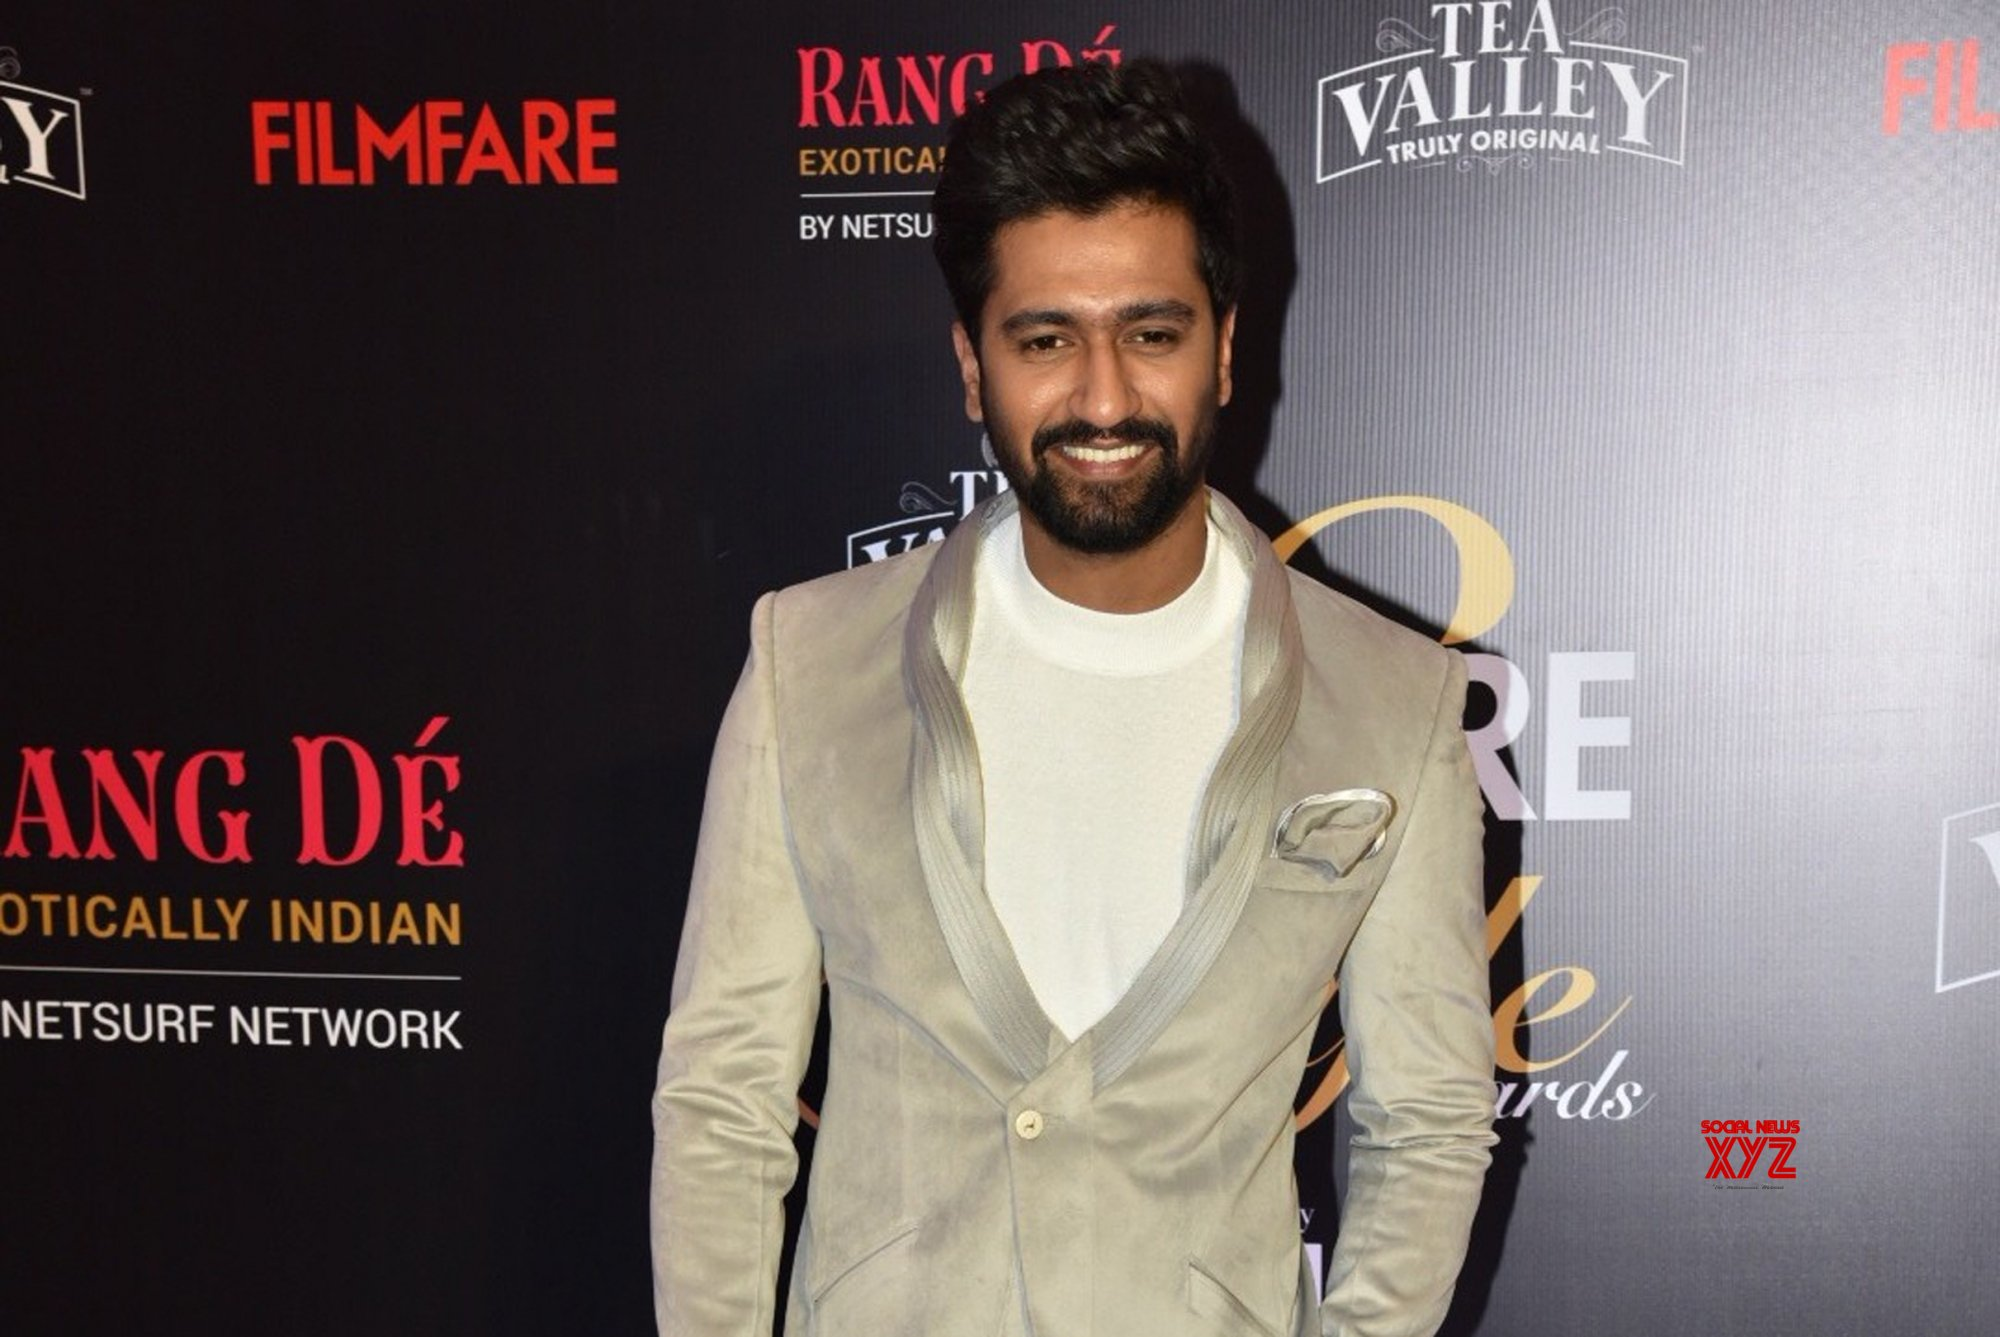 Mumbai: Filmfare Glamour And Style Awards 2019 - Vicky Kaushal #Gallery